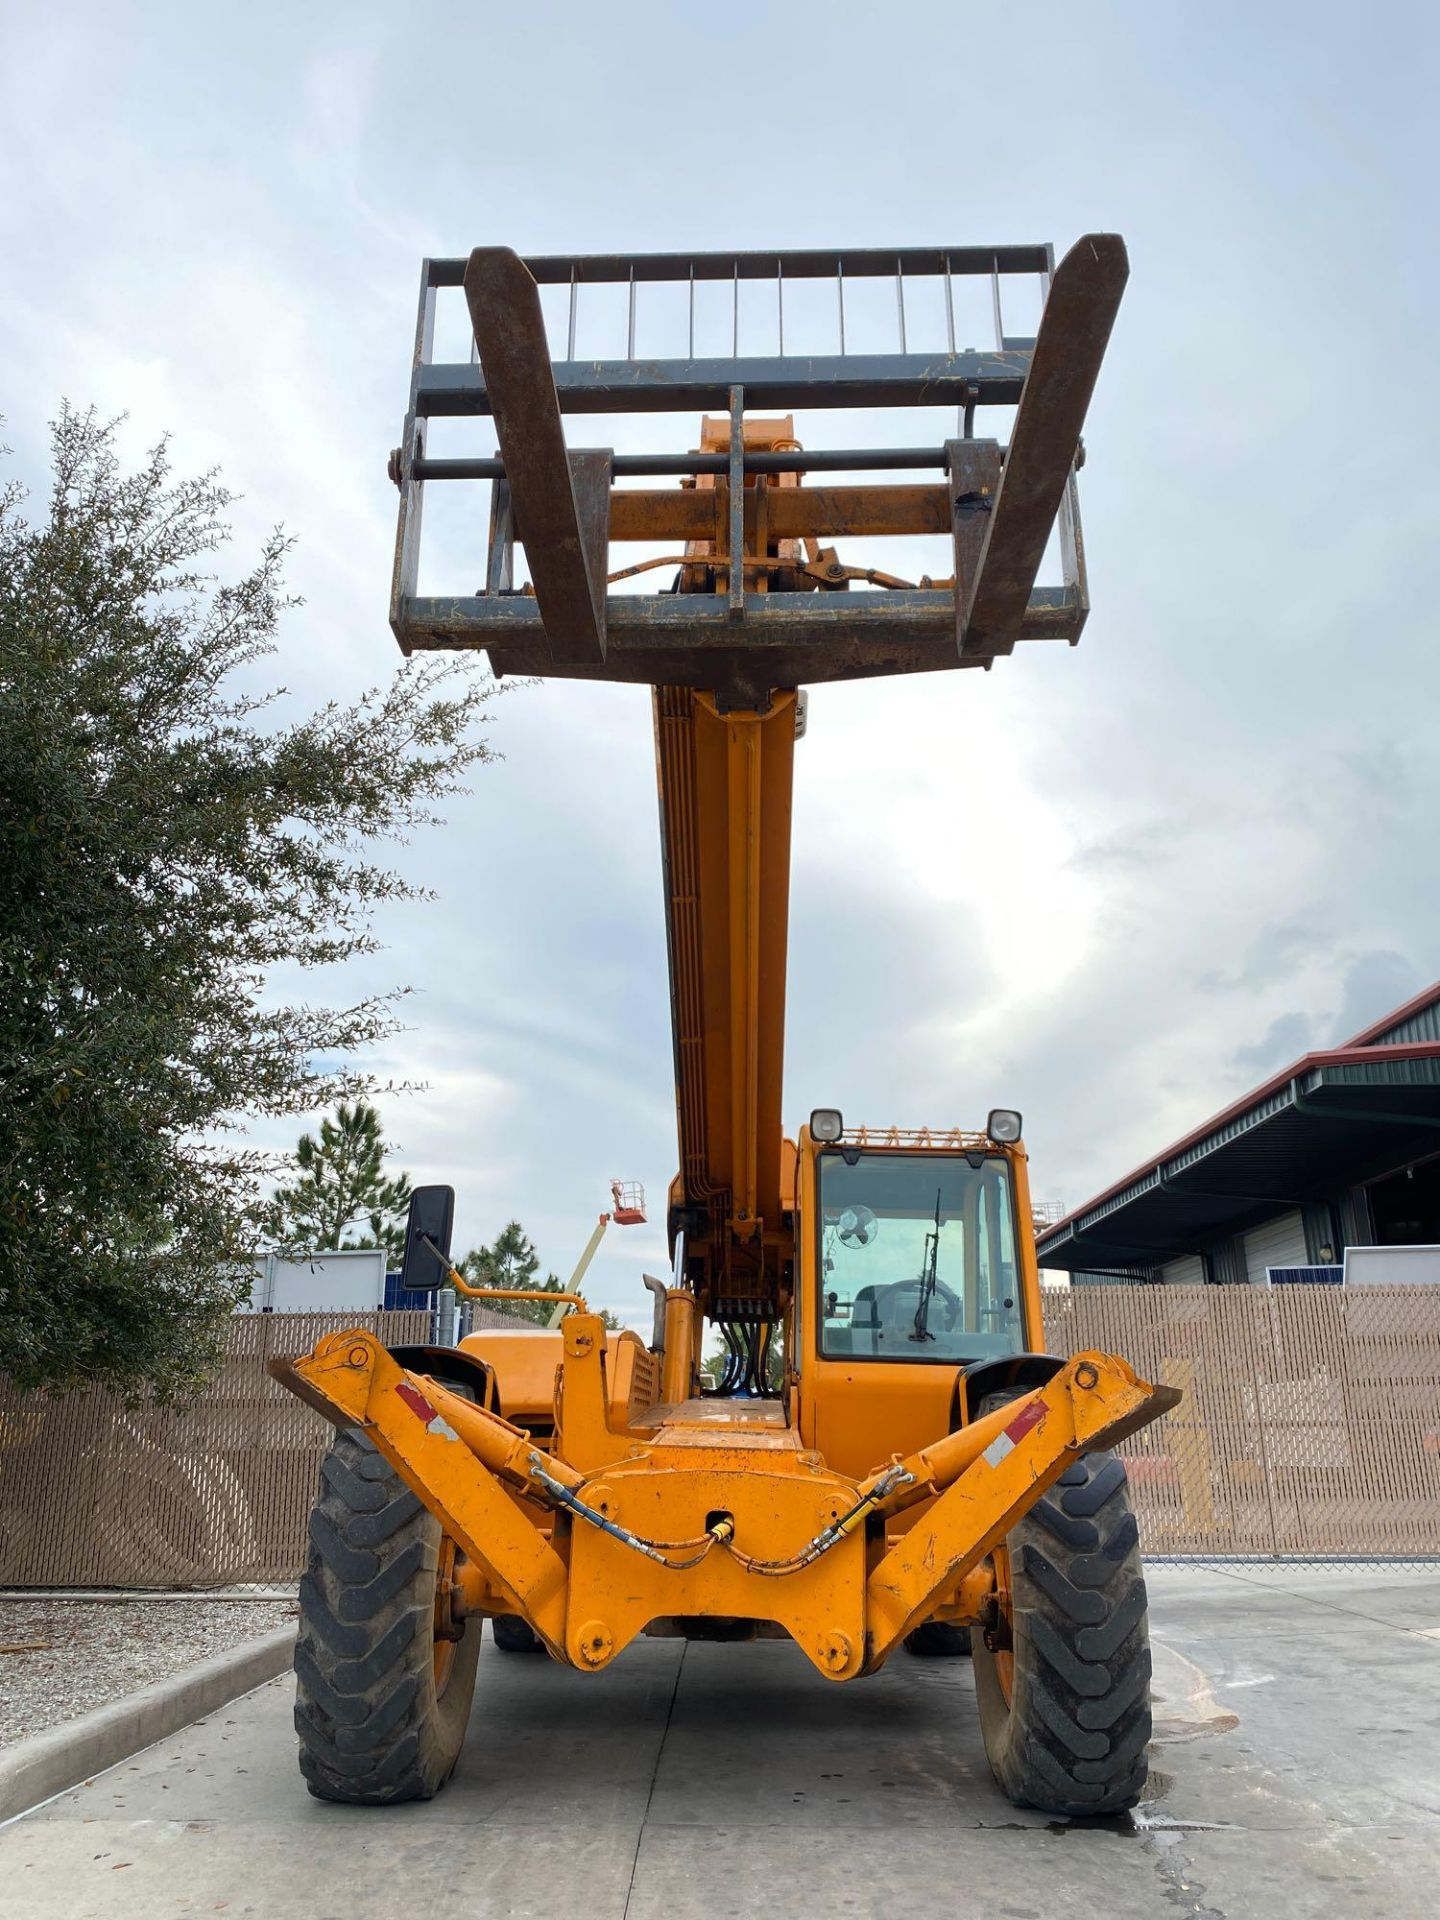 Lot 28 - GEHL DL-10H DIESEL TELESCOPIC FORKLIFT, 4x4 10,000 LB CAPACITY, RUNS AND OPERATES